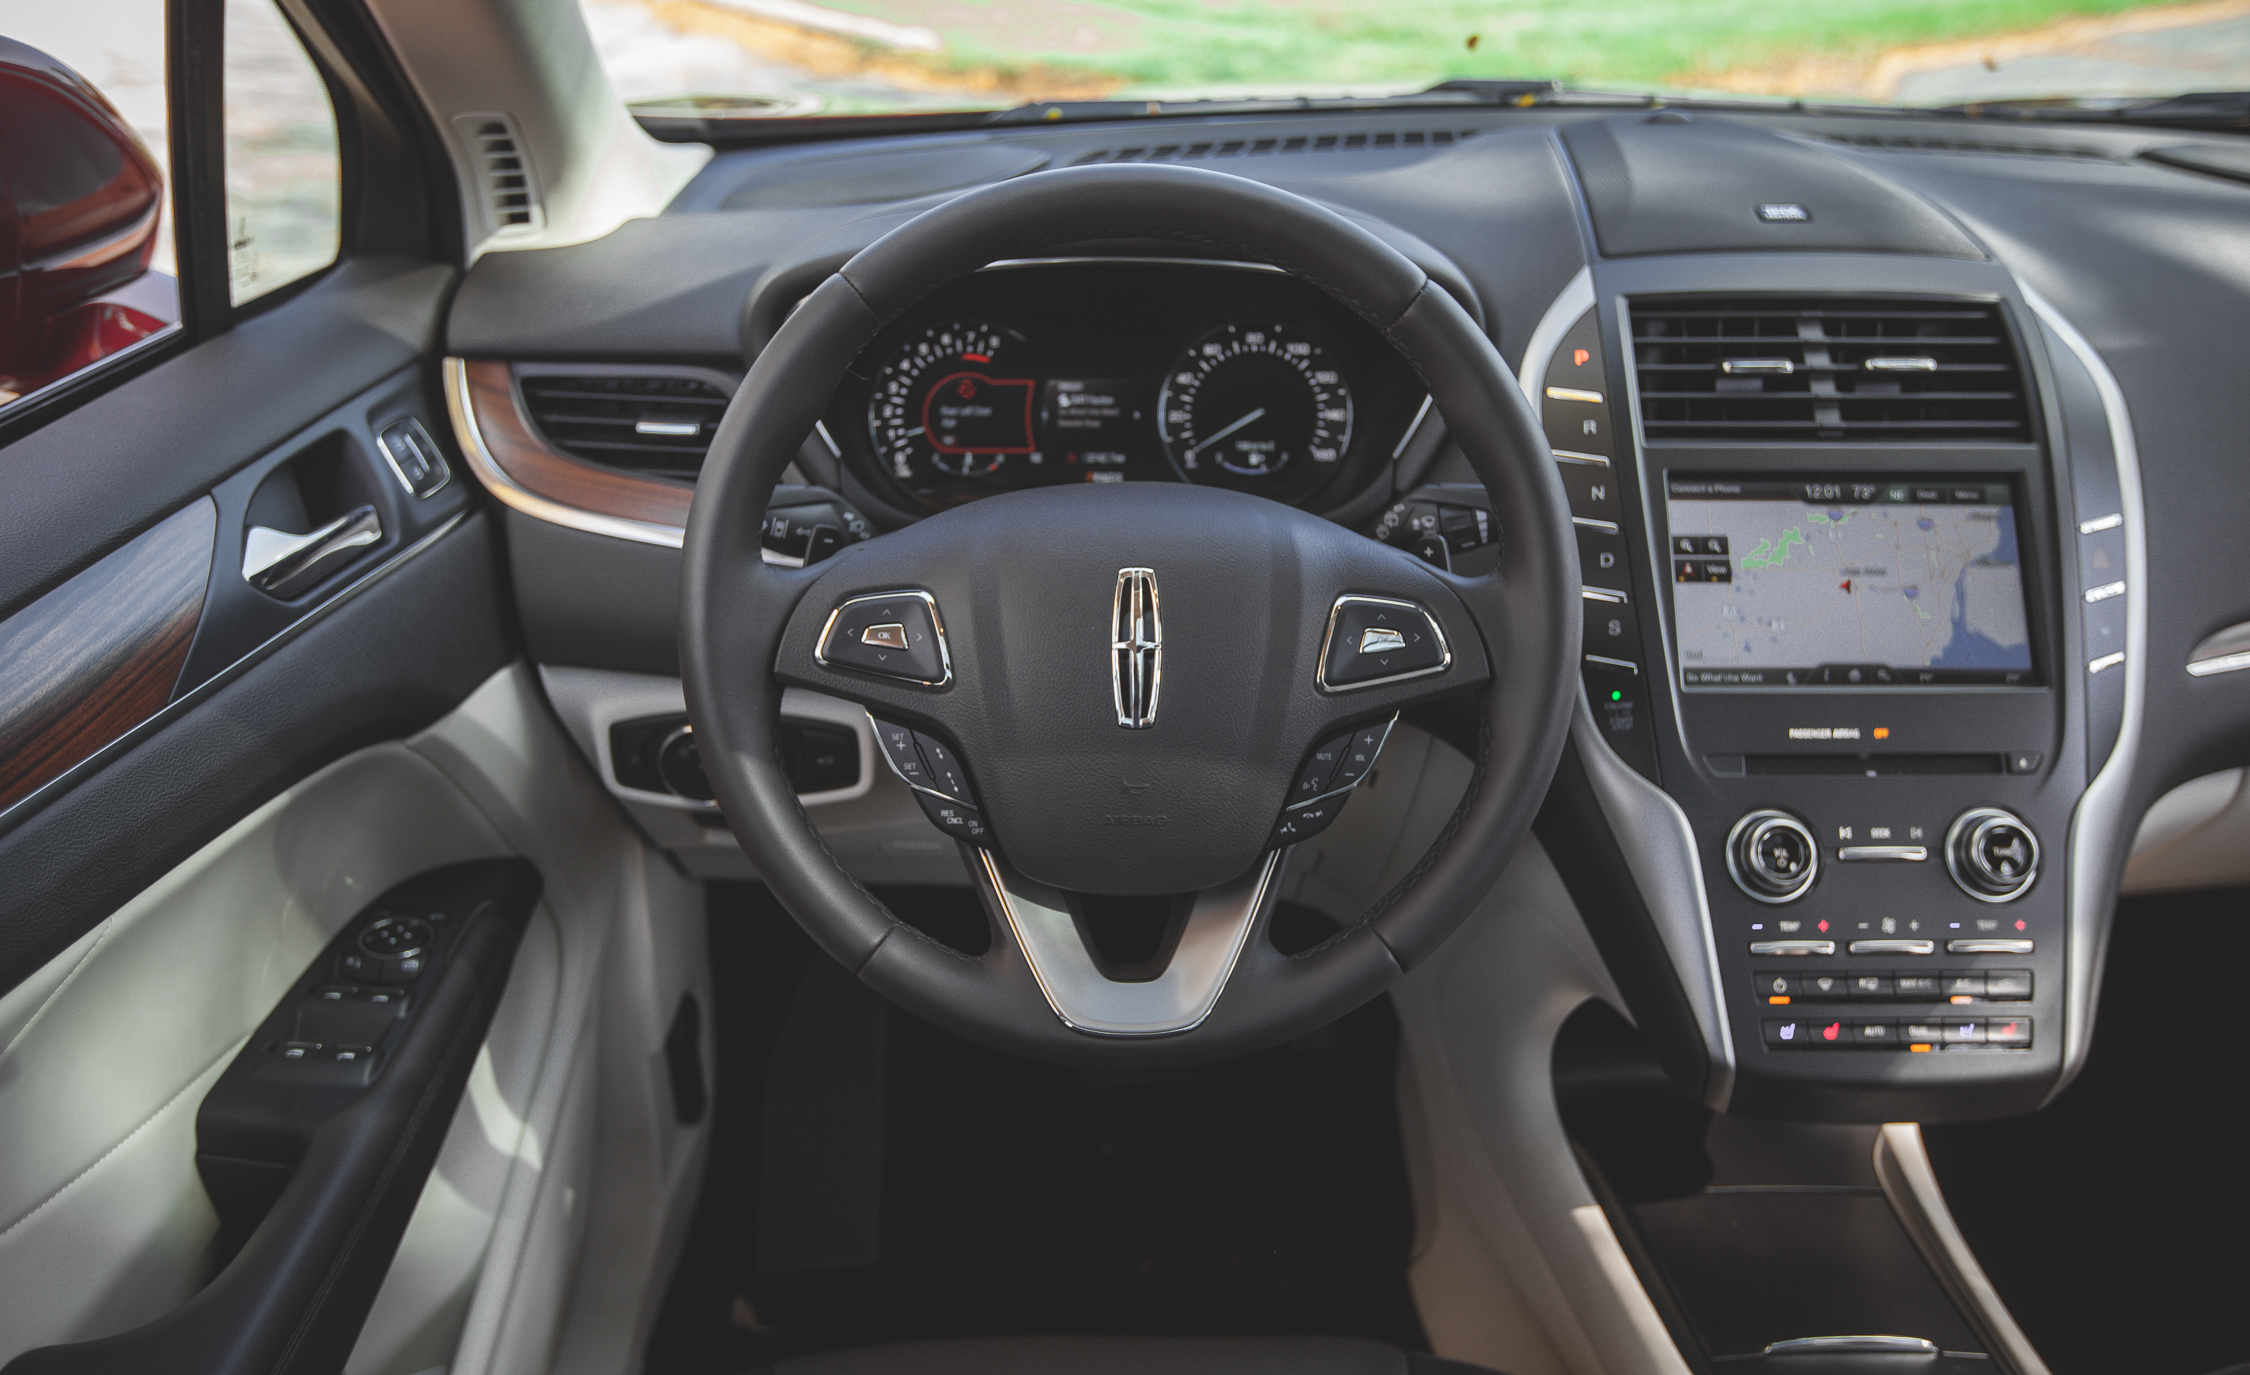 2015 Lincoln MKC 2.3 EcoBoost AWD Steering Wheel